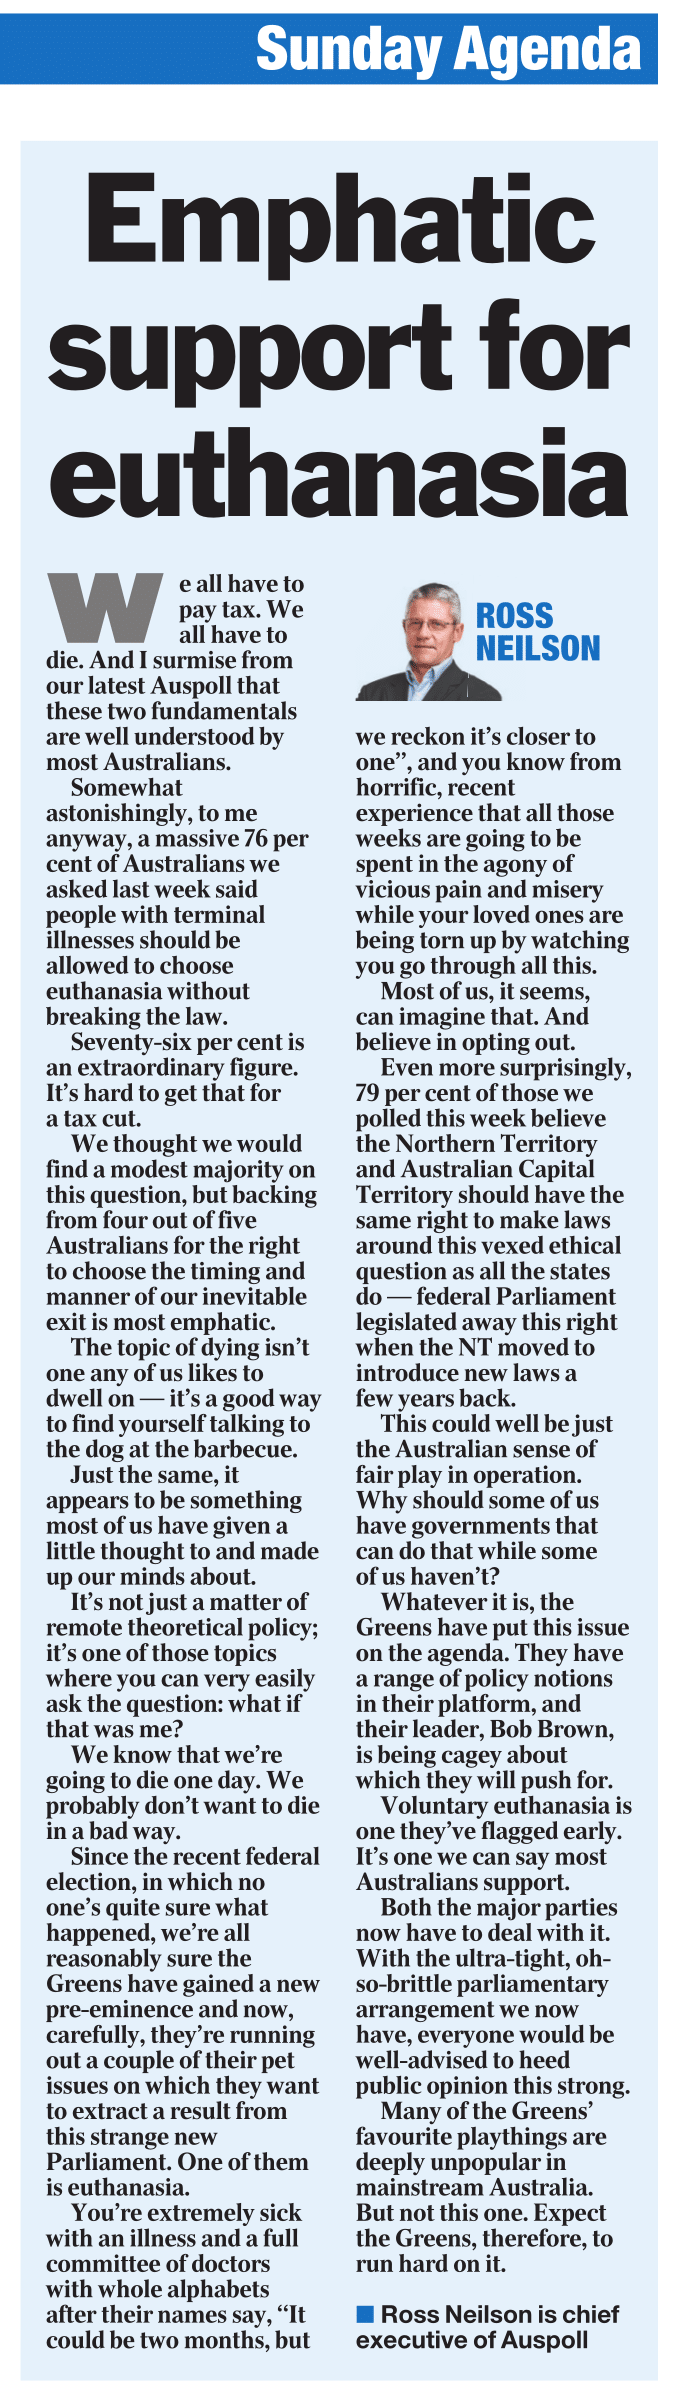 Emphatic support for euthanasia